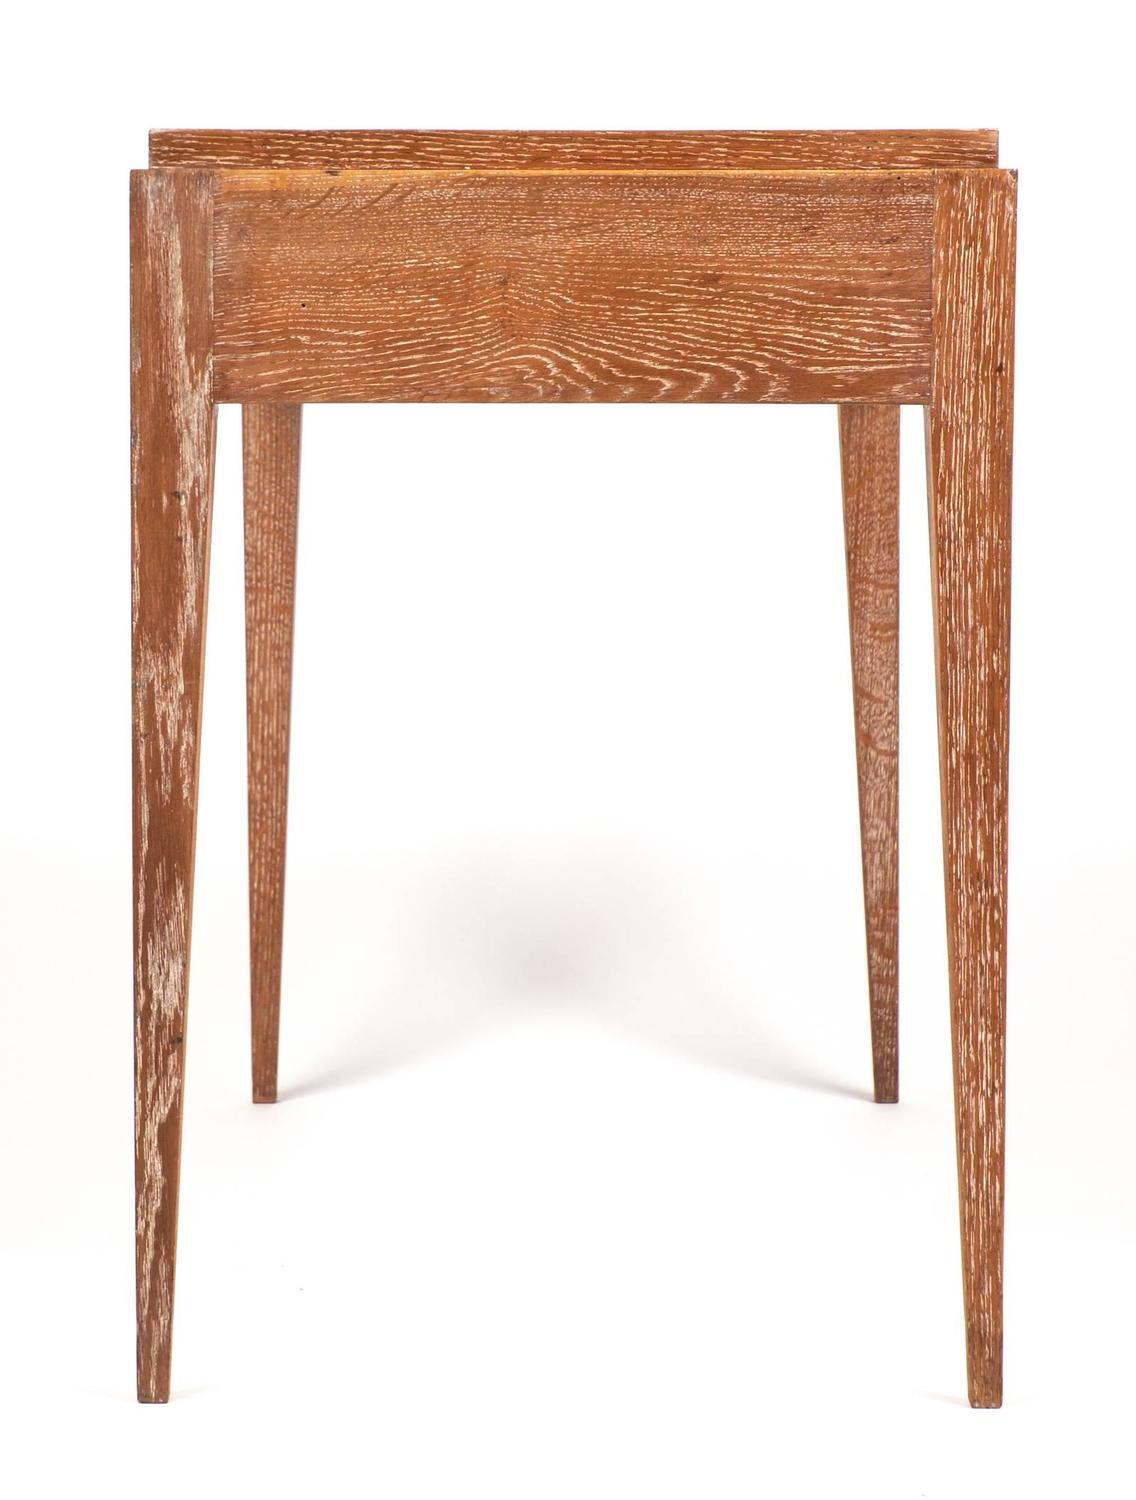 Marvelous photograph of French Art Deco Period Cerused Oak Writing Desk at 1stdibs with #8C4F30 color and 1136x1500 pixels